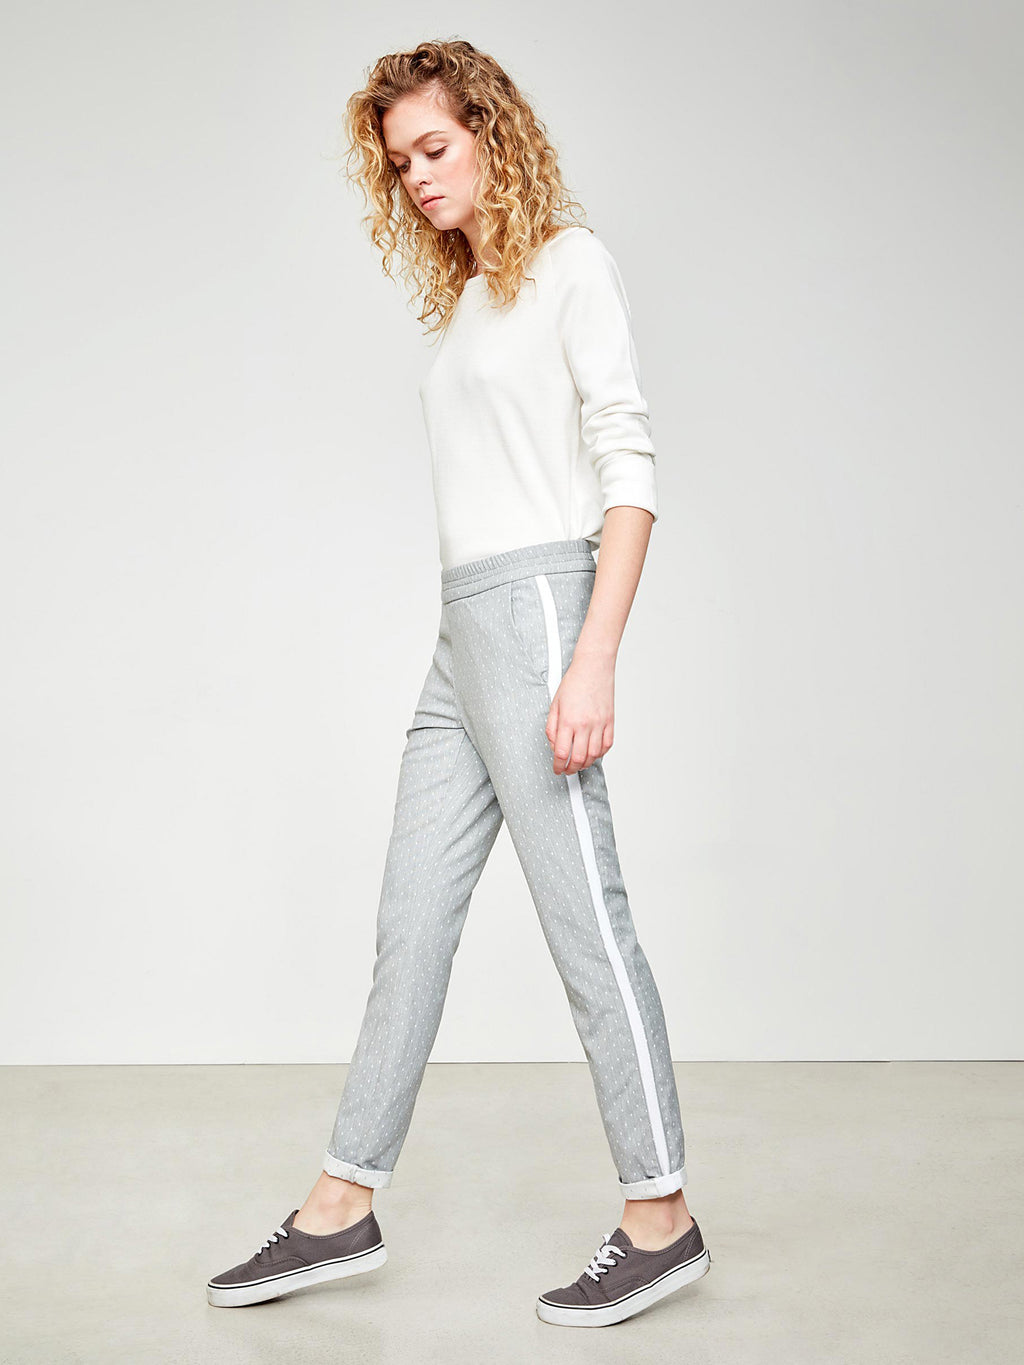 REIKO - Elvin Fancy Street Pants online at PAYA boutique